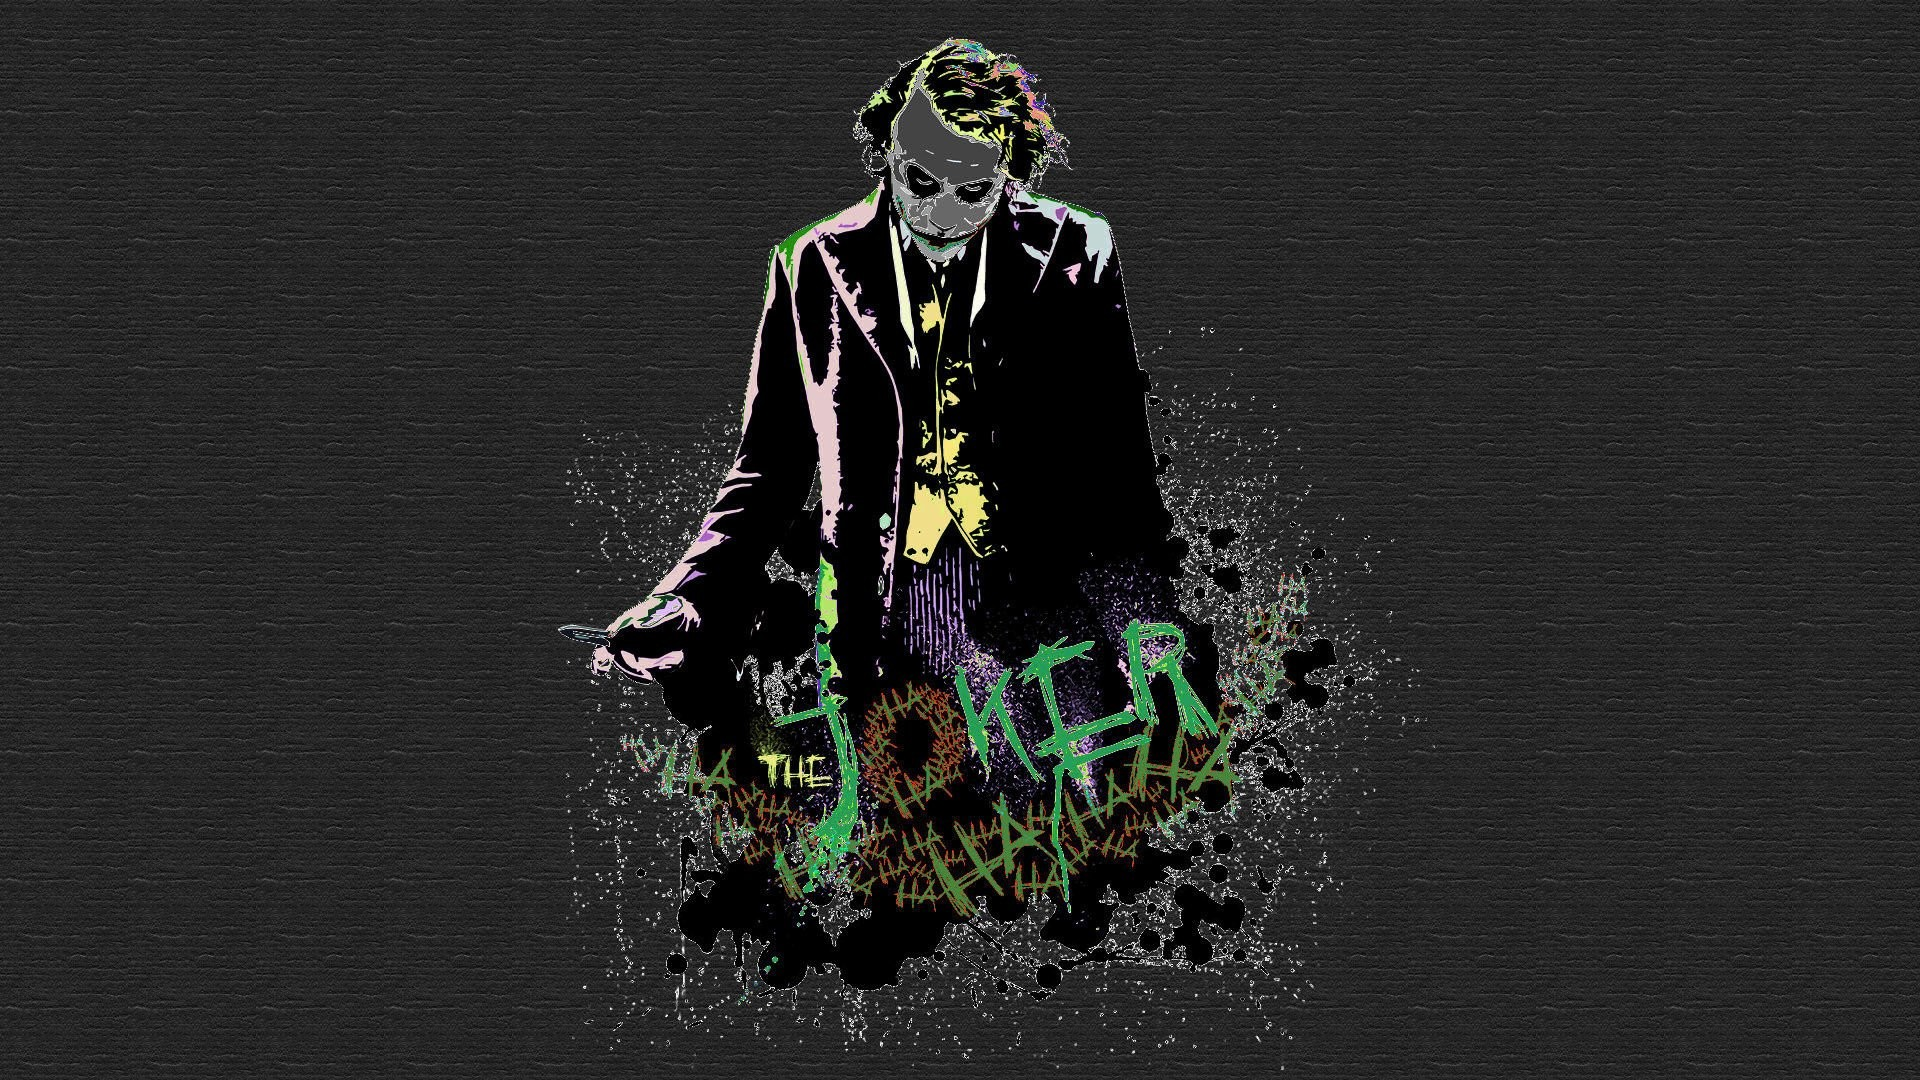 1920x1080 Heath Ledger Joker Wallpaper wallpaper.